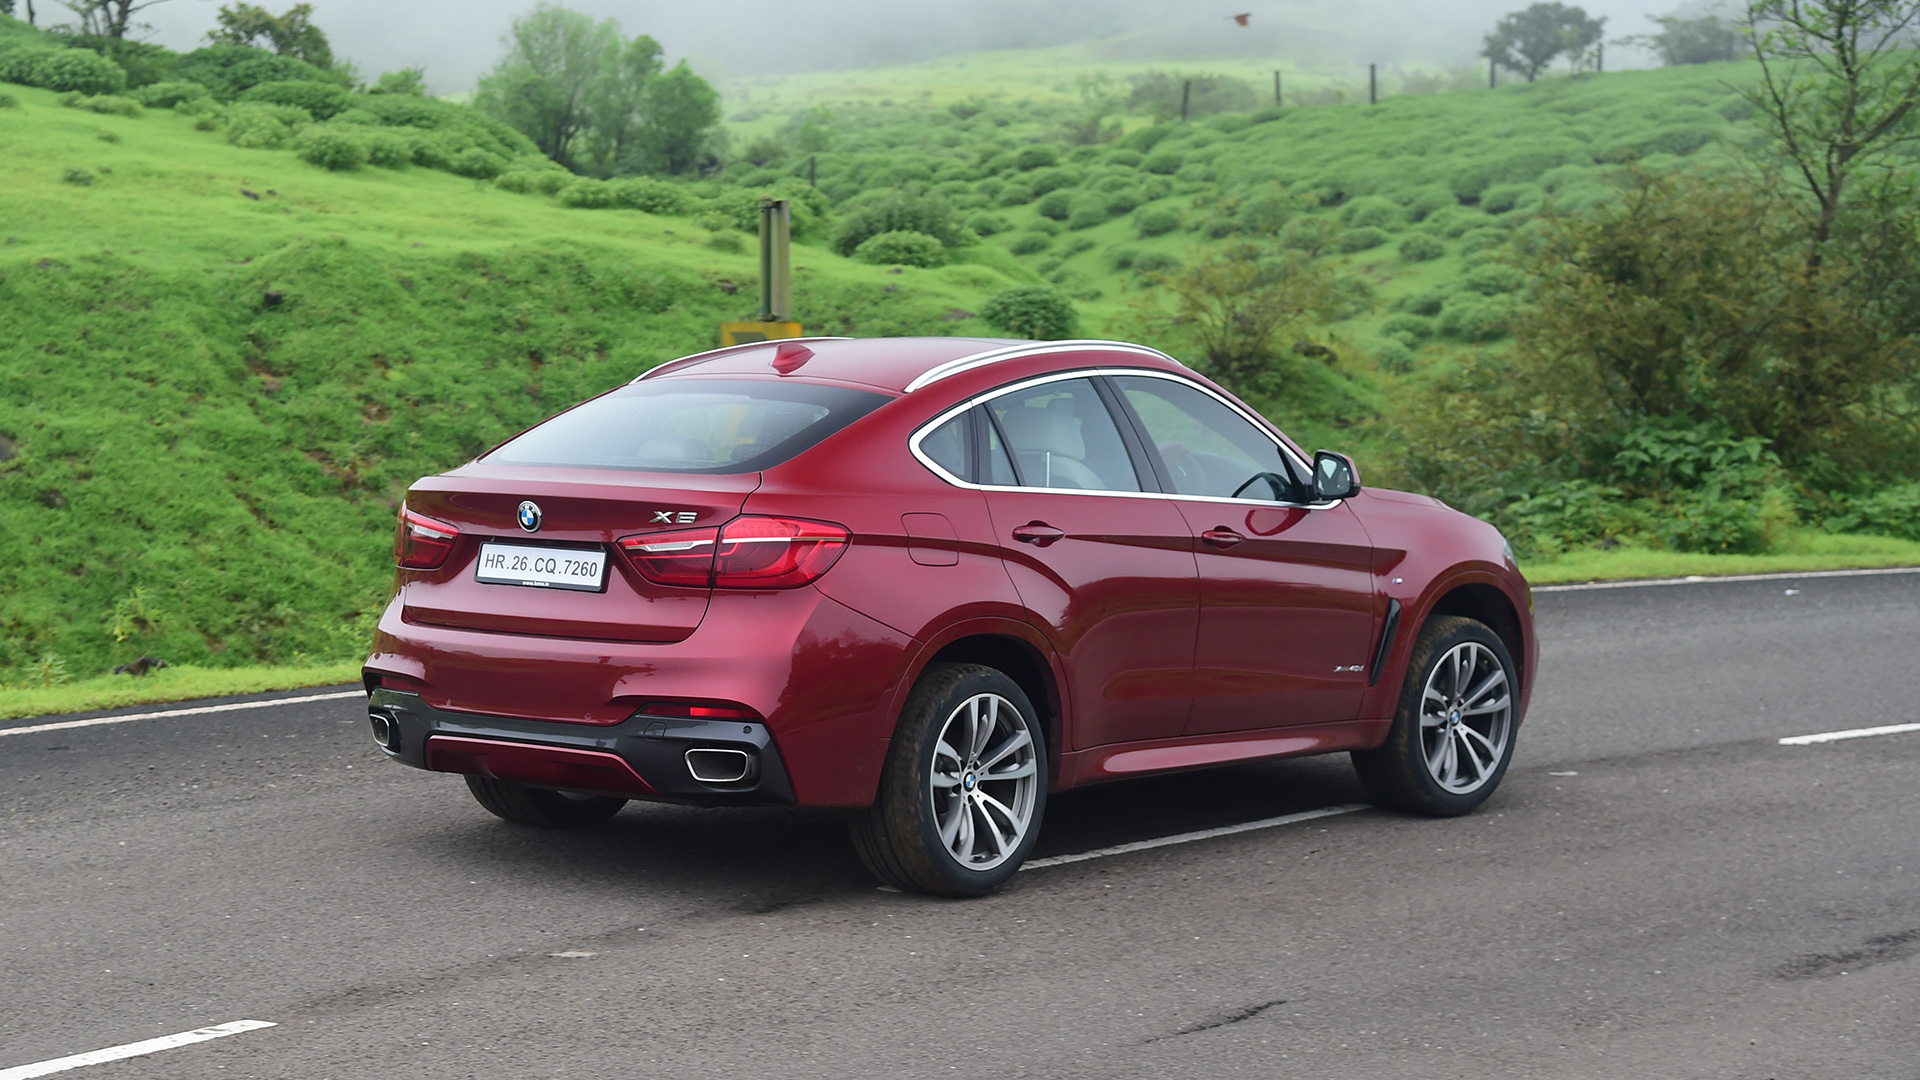 Bmw X6 2018 Price Mileage Reviews Specification